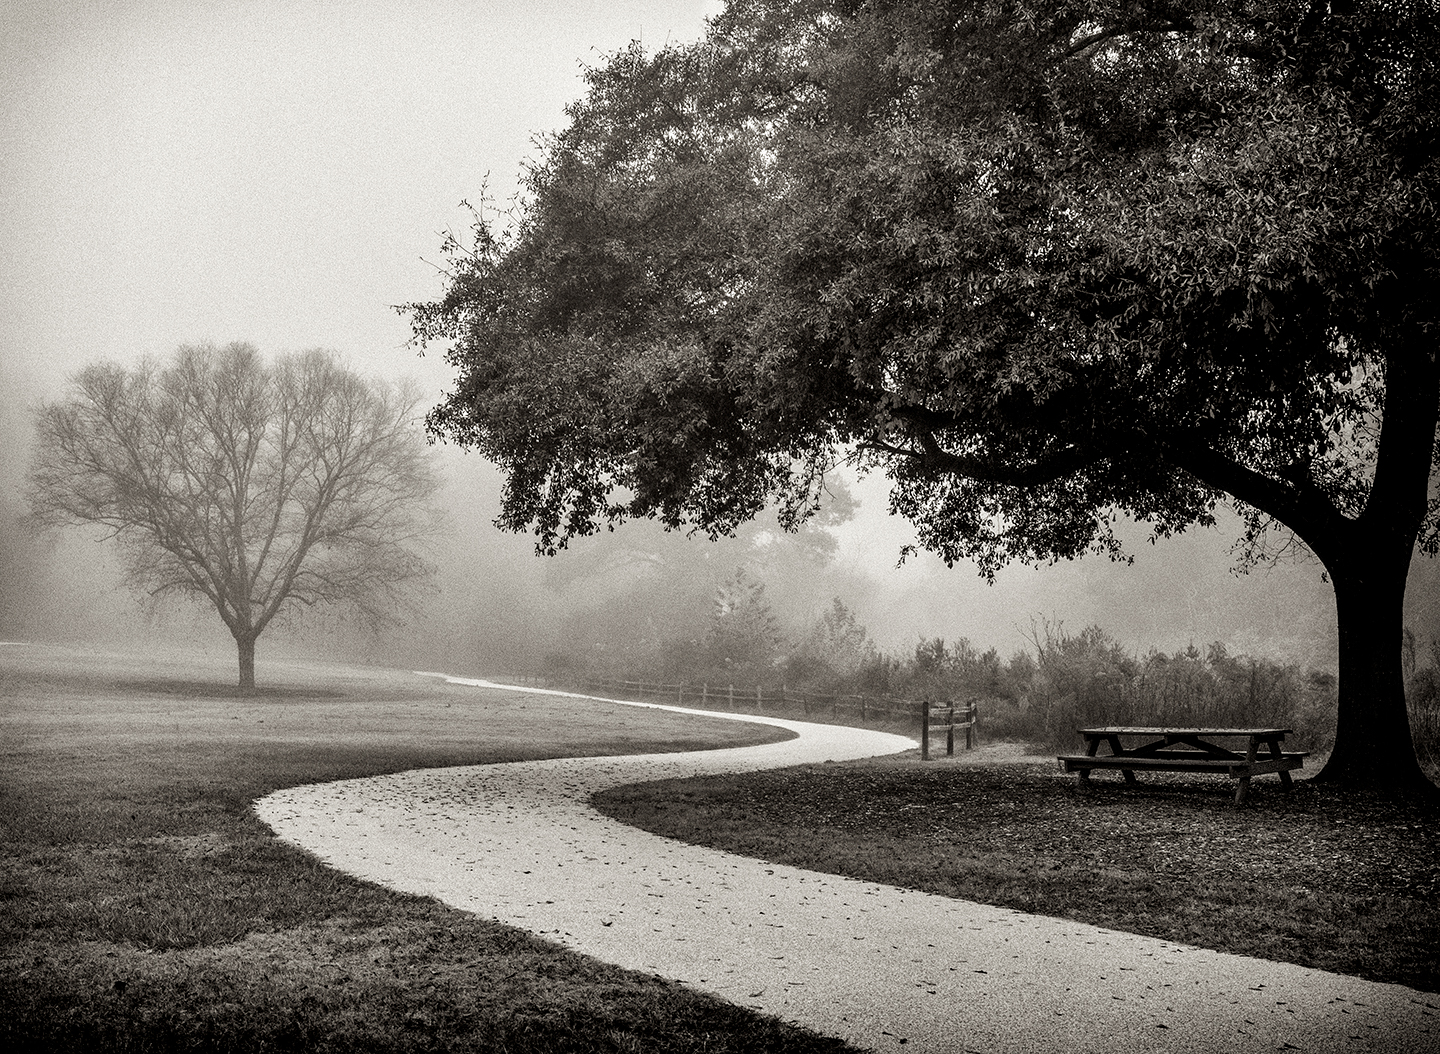 Black and white and fog and rain.